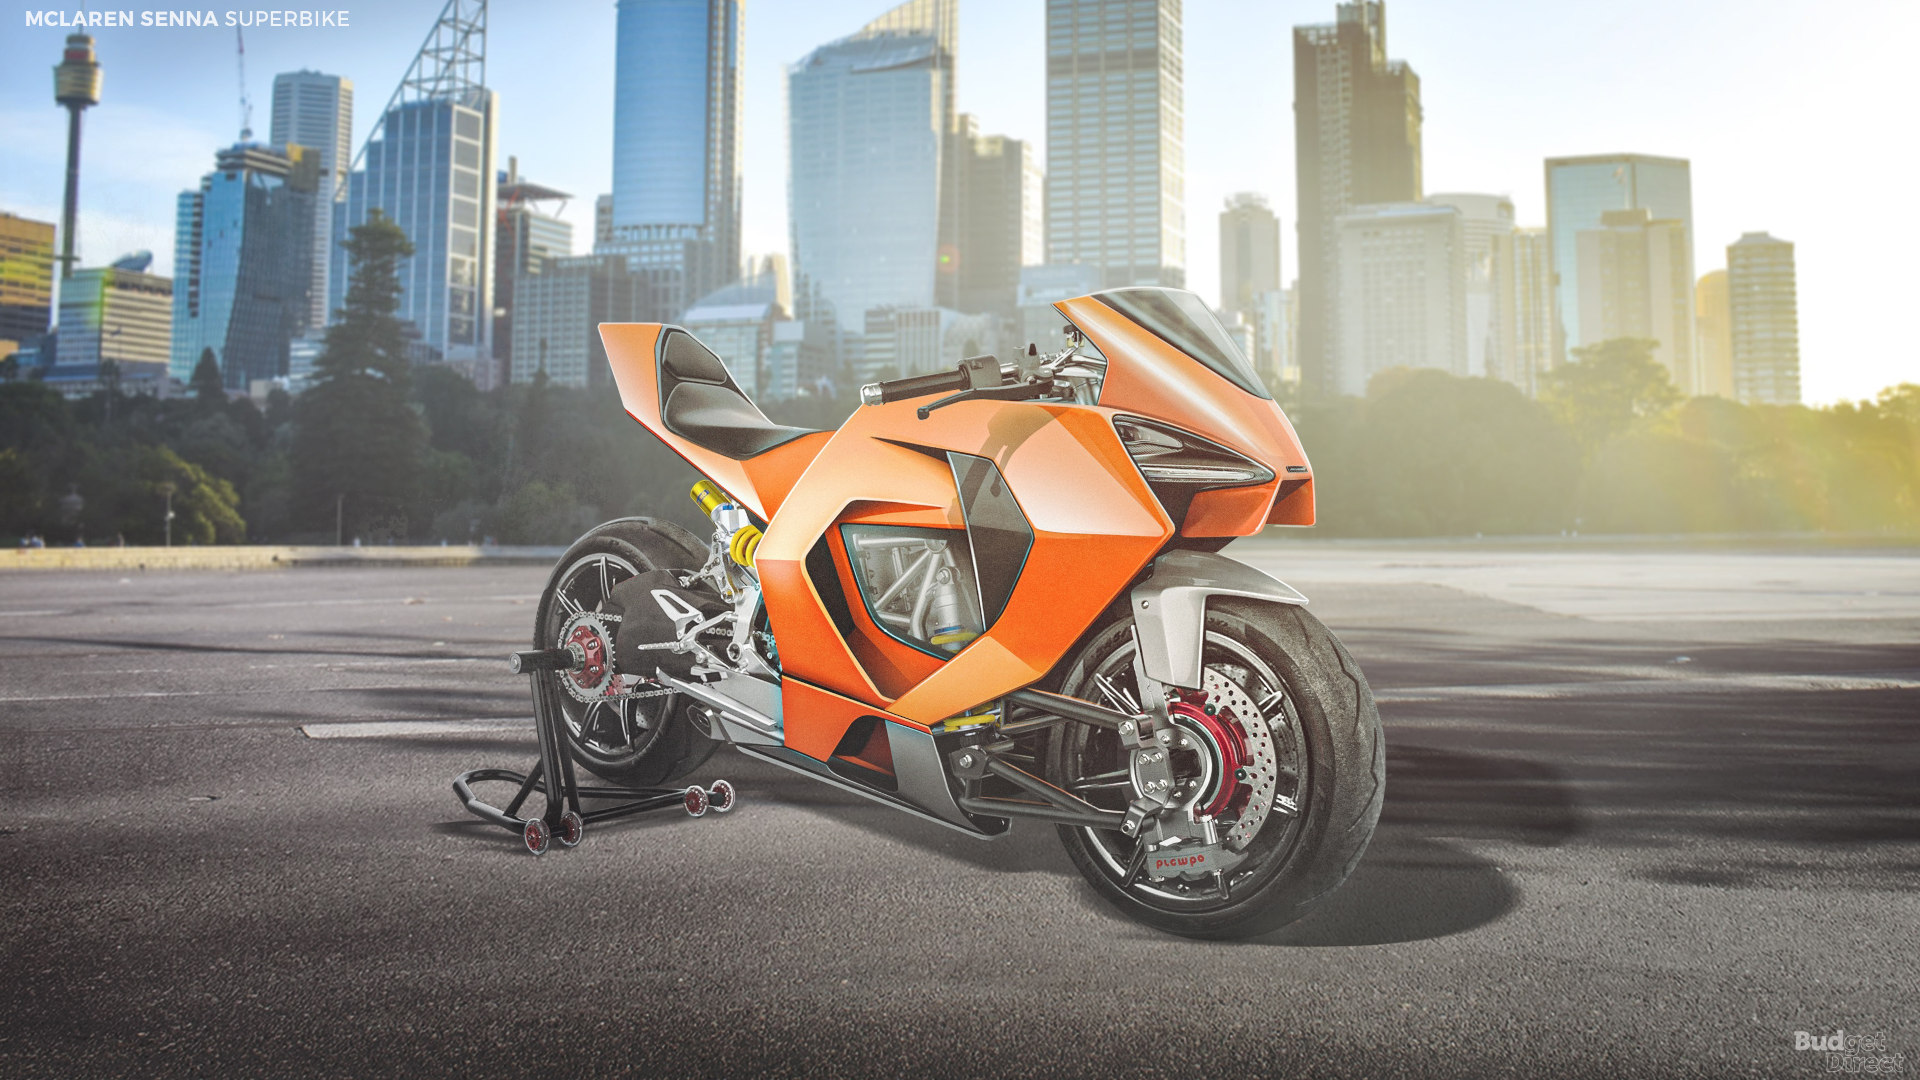 What if supercar brands made superbikes? A McLaren superbike would likely look like a two-wheeled Senna